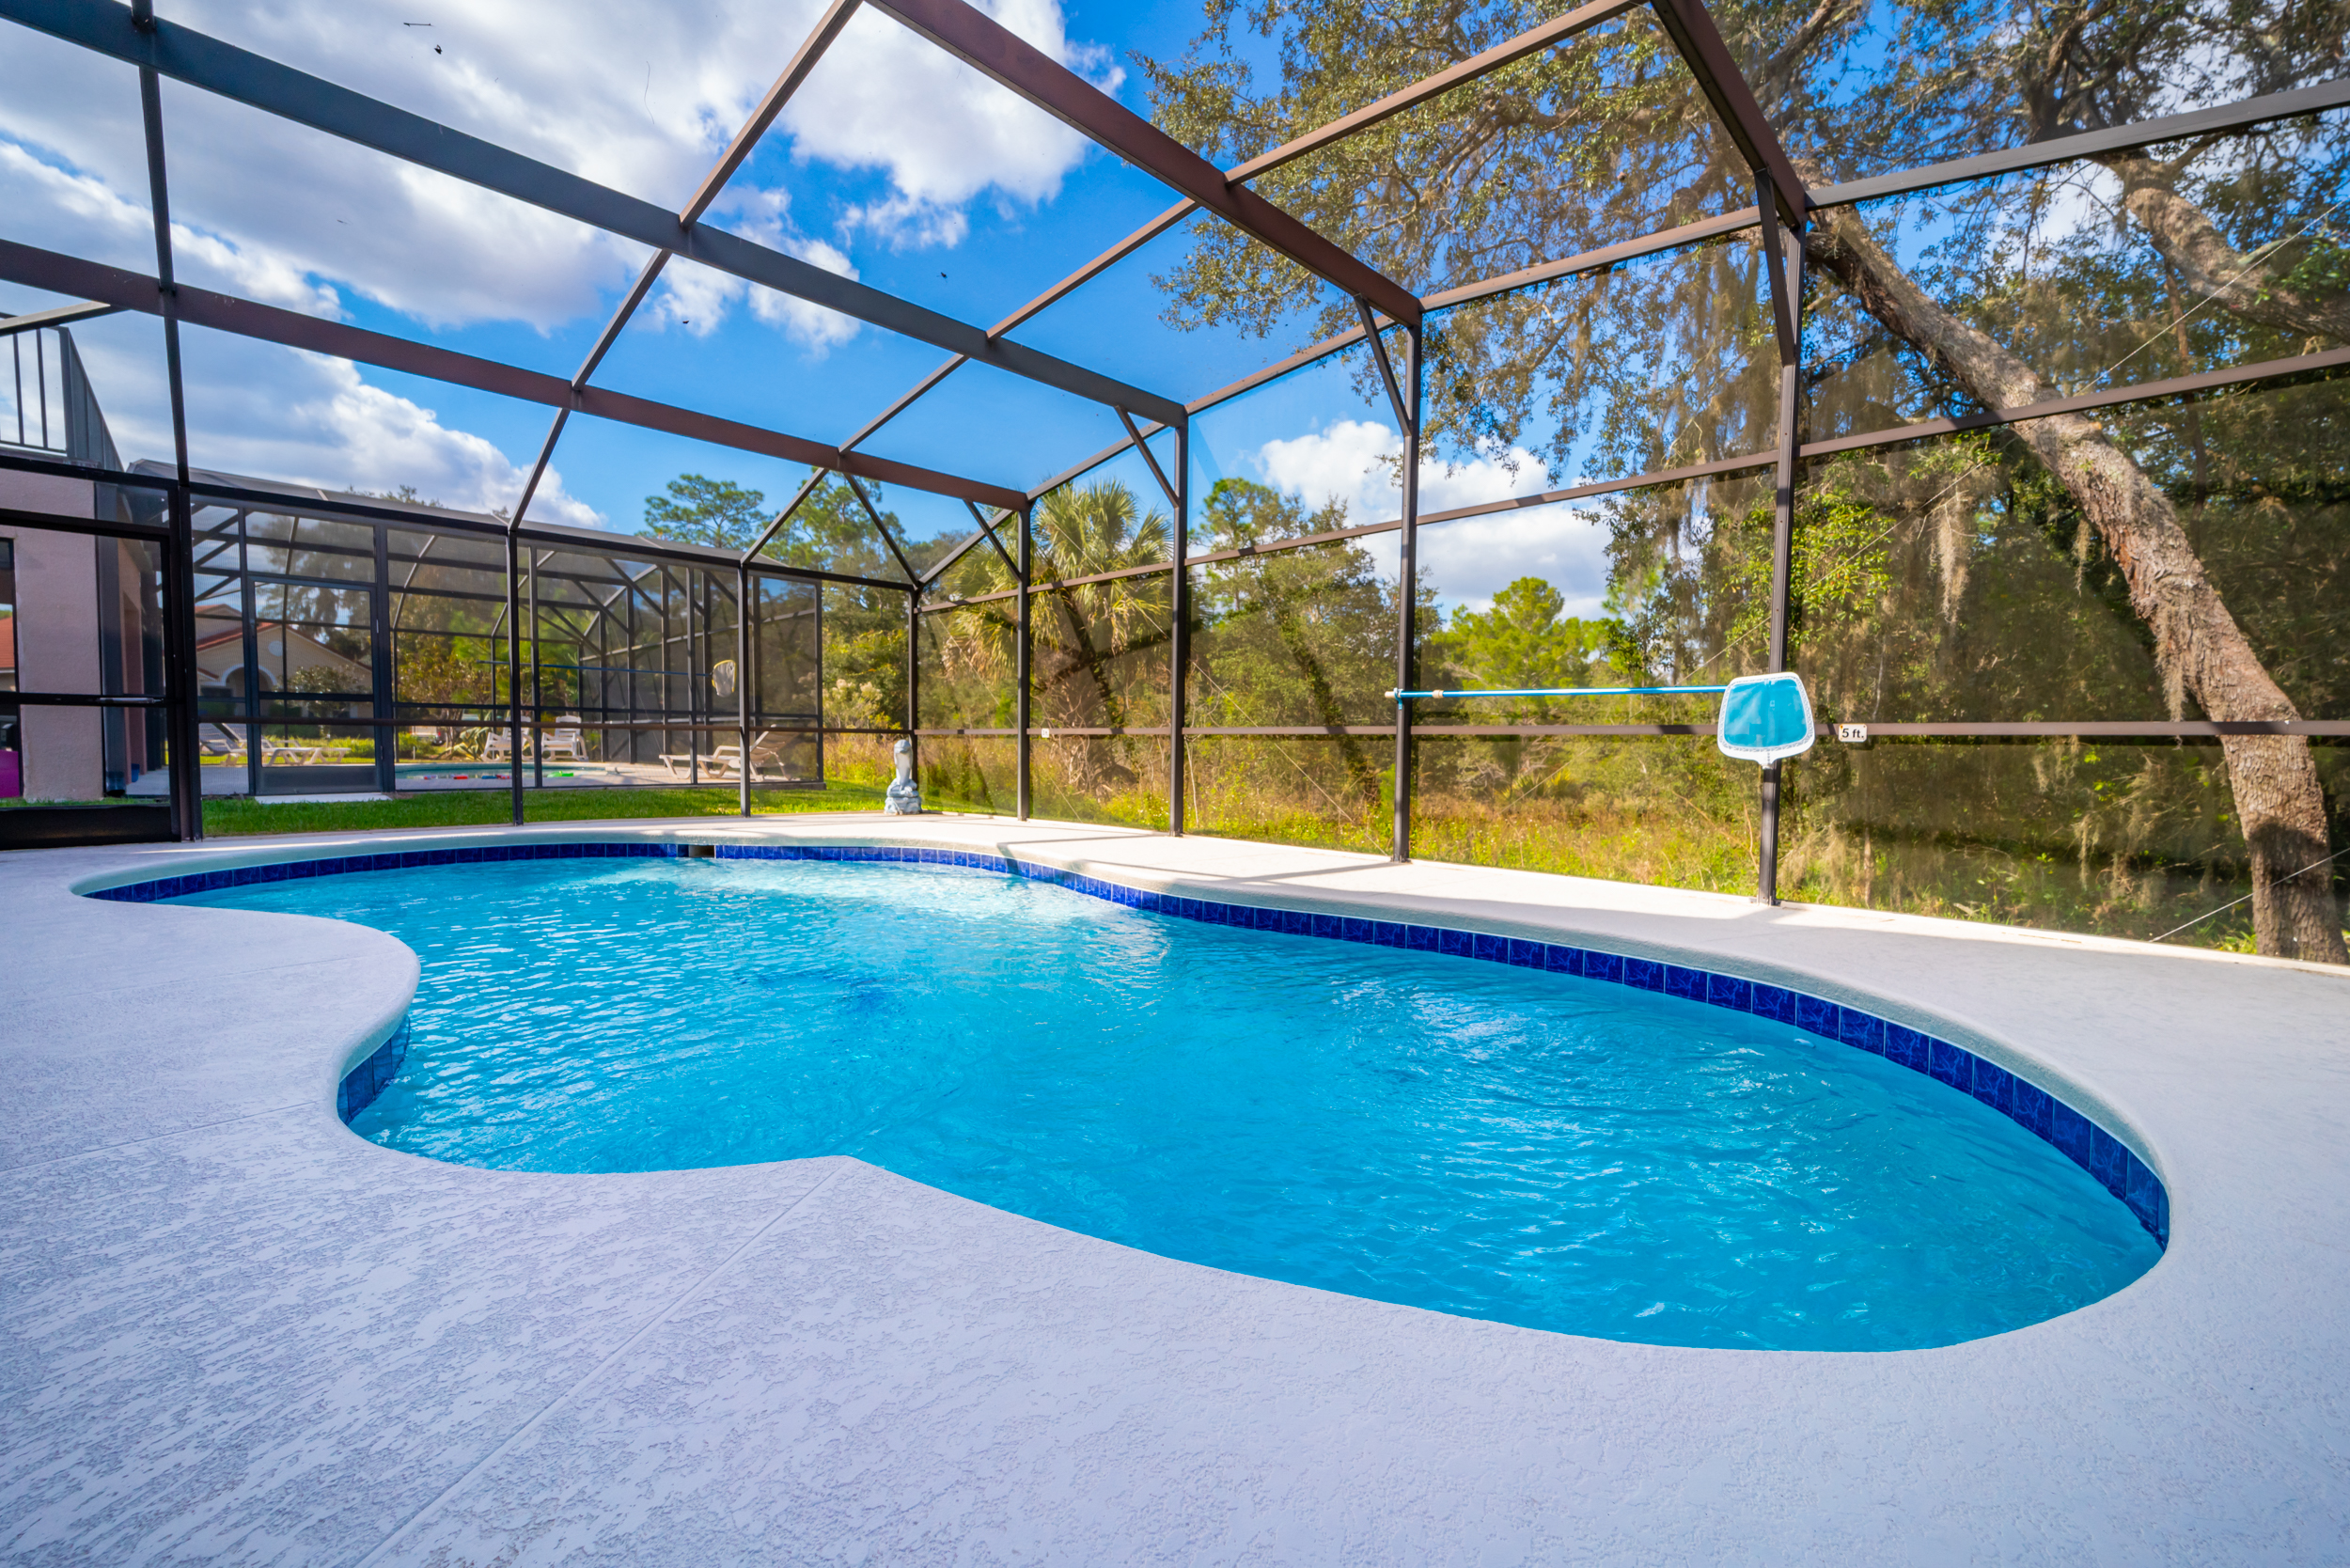 pool deck with screened enclosure